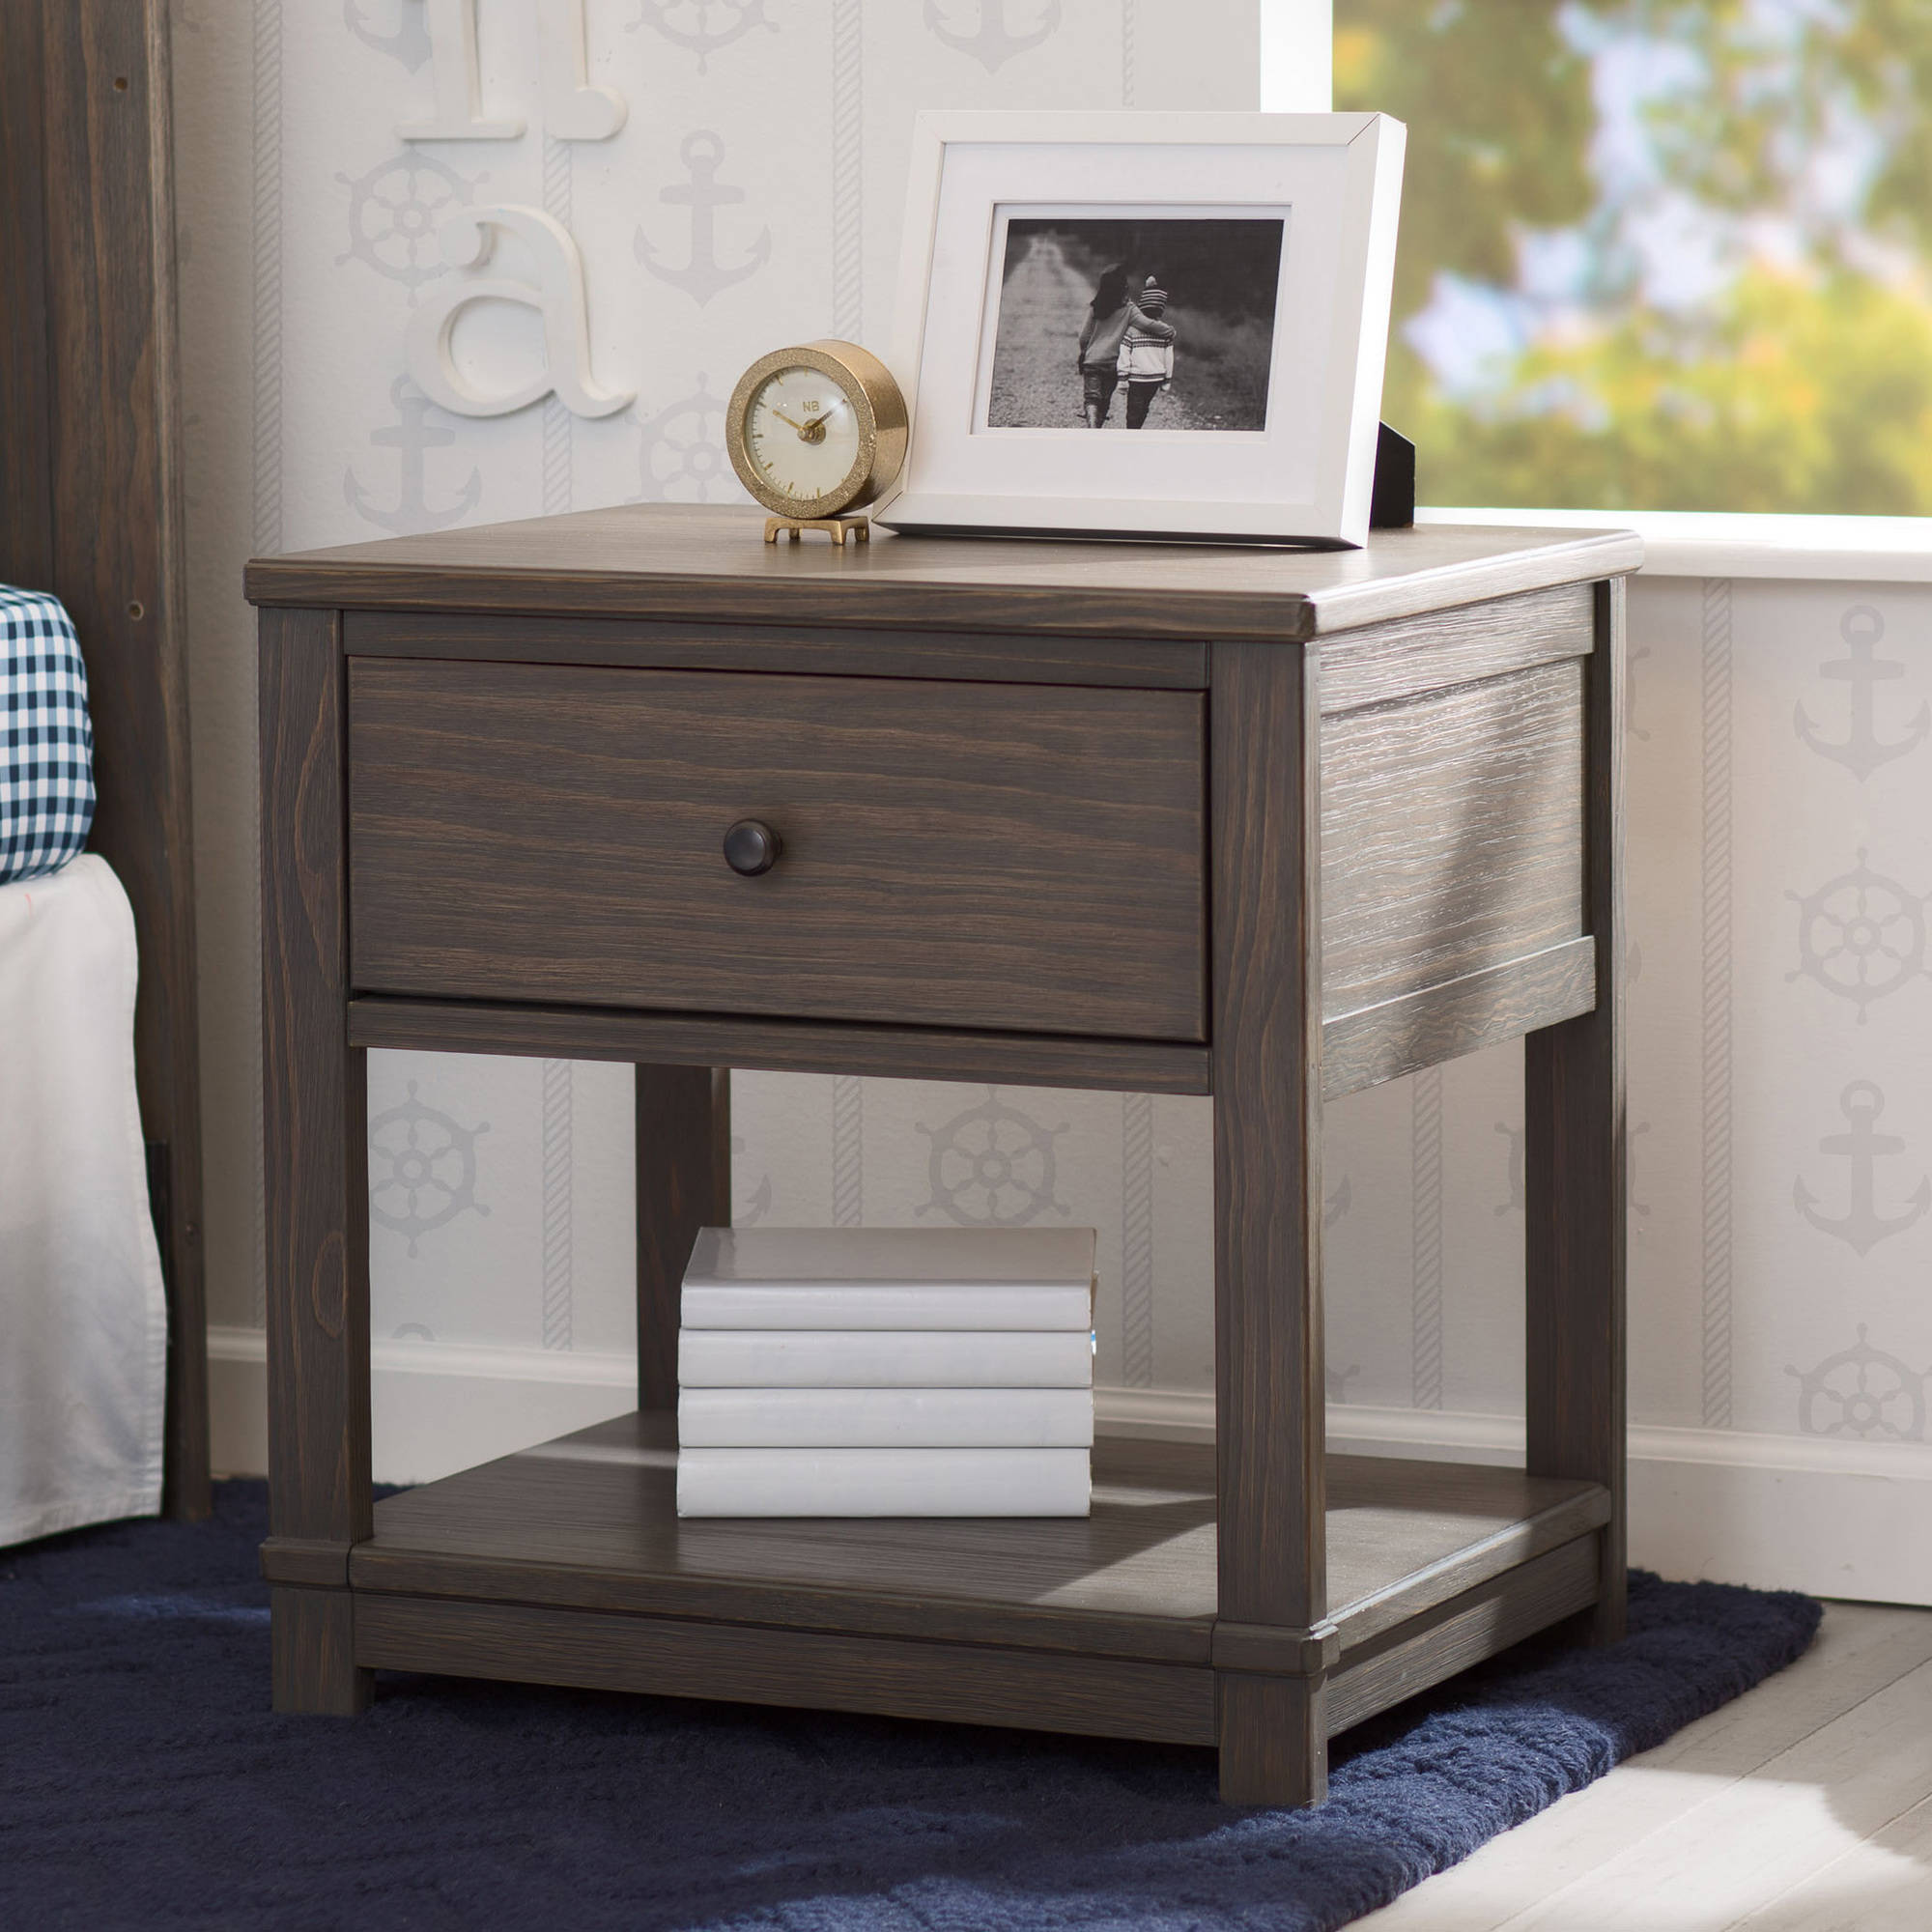 marble top kitchen table the terrific awesome mainstays nightstand delta children cali with drawer and shelf rustic grey end dark gray oak flexsteel furniture black coffee trunk